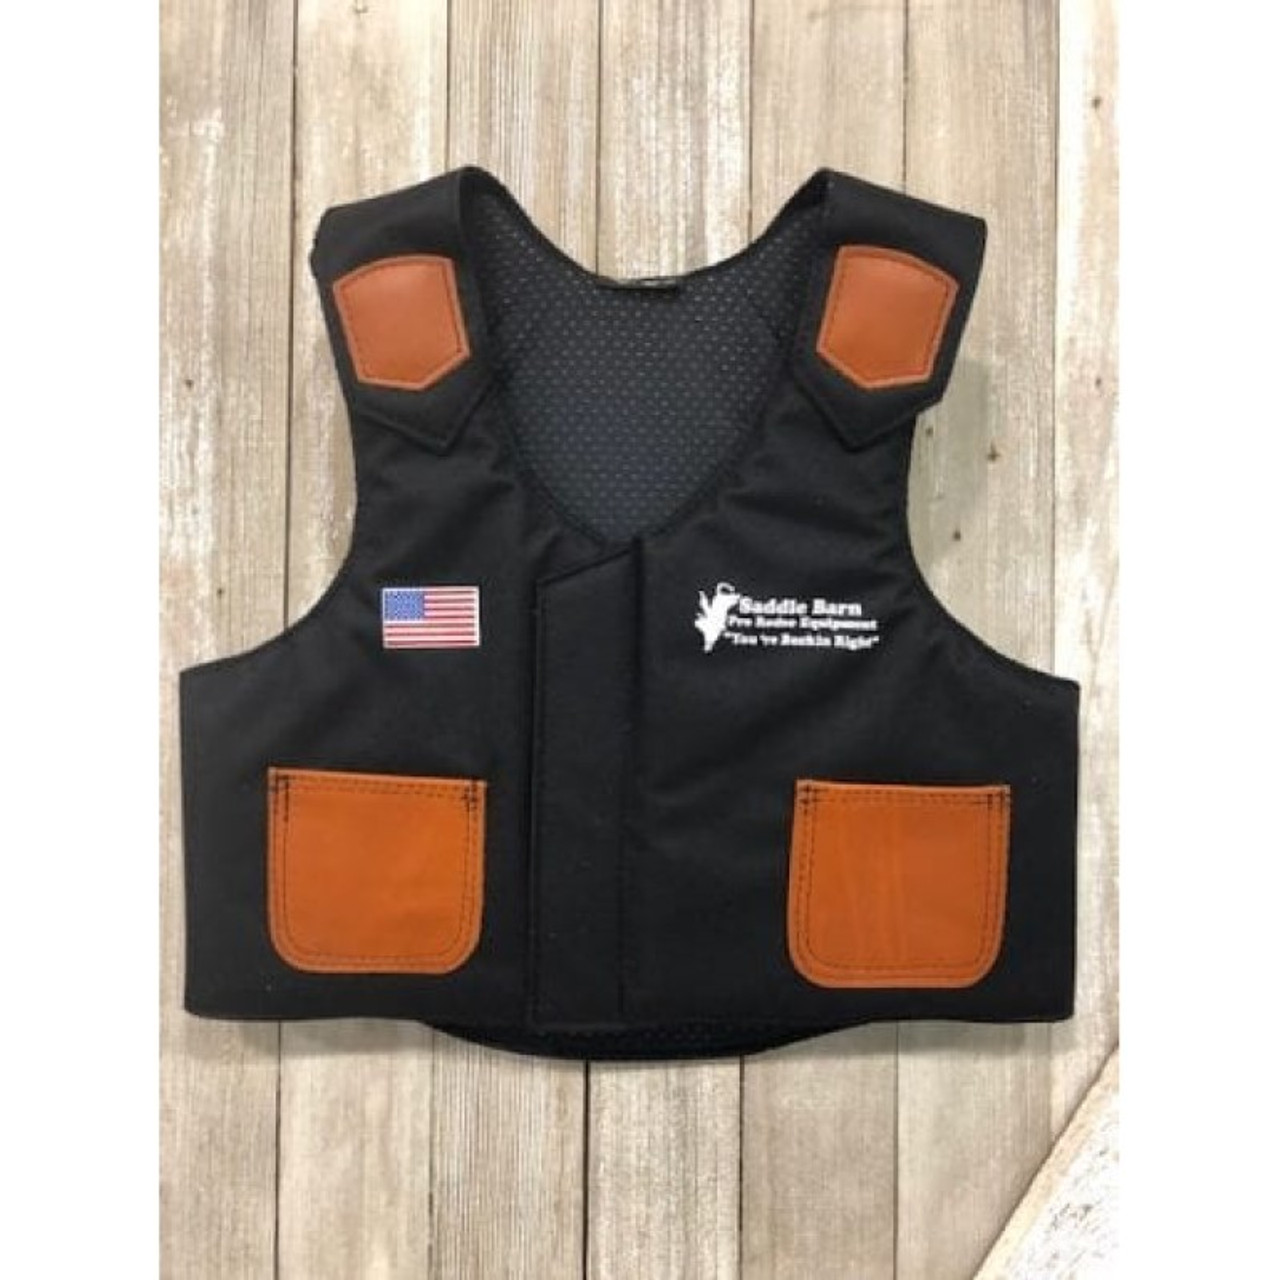 Saddle Junior Barn Bull Vest Rider Cordura mw0vN8n